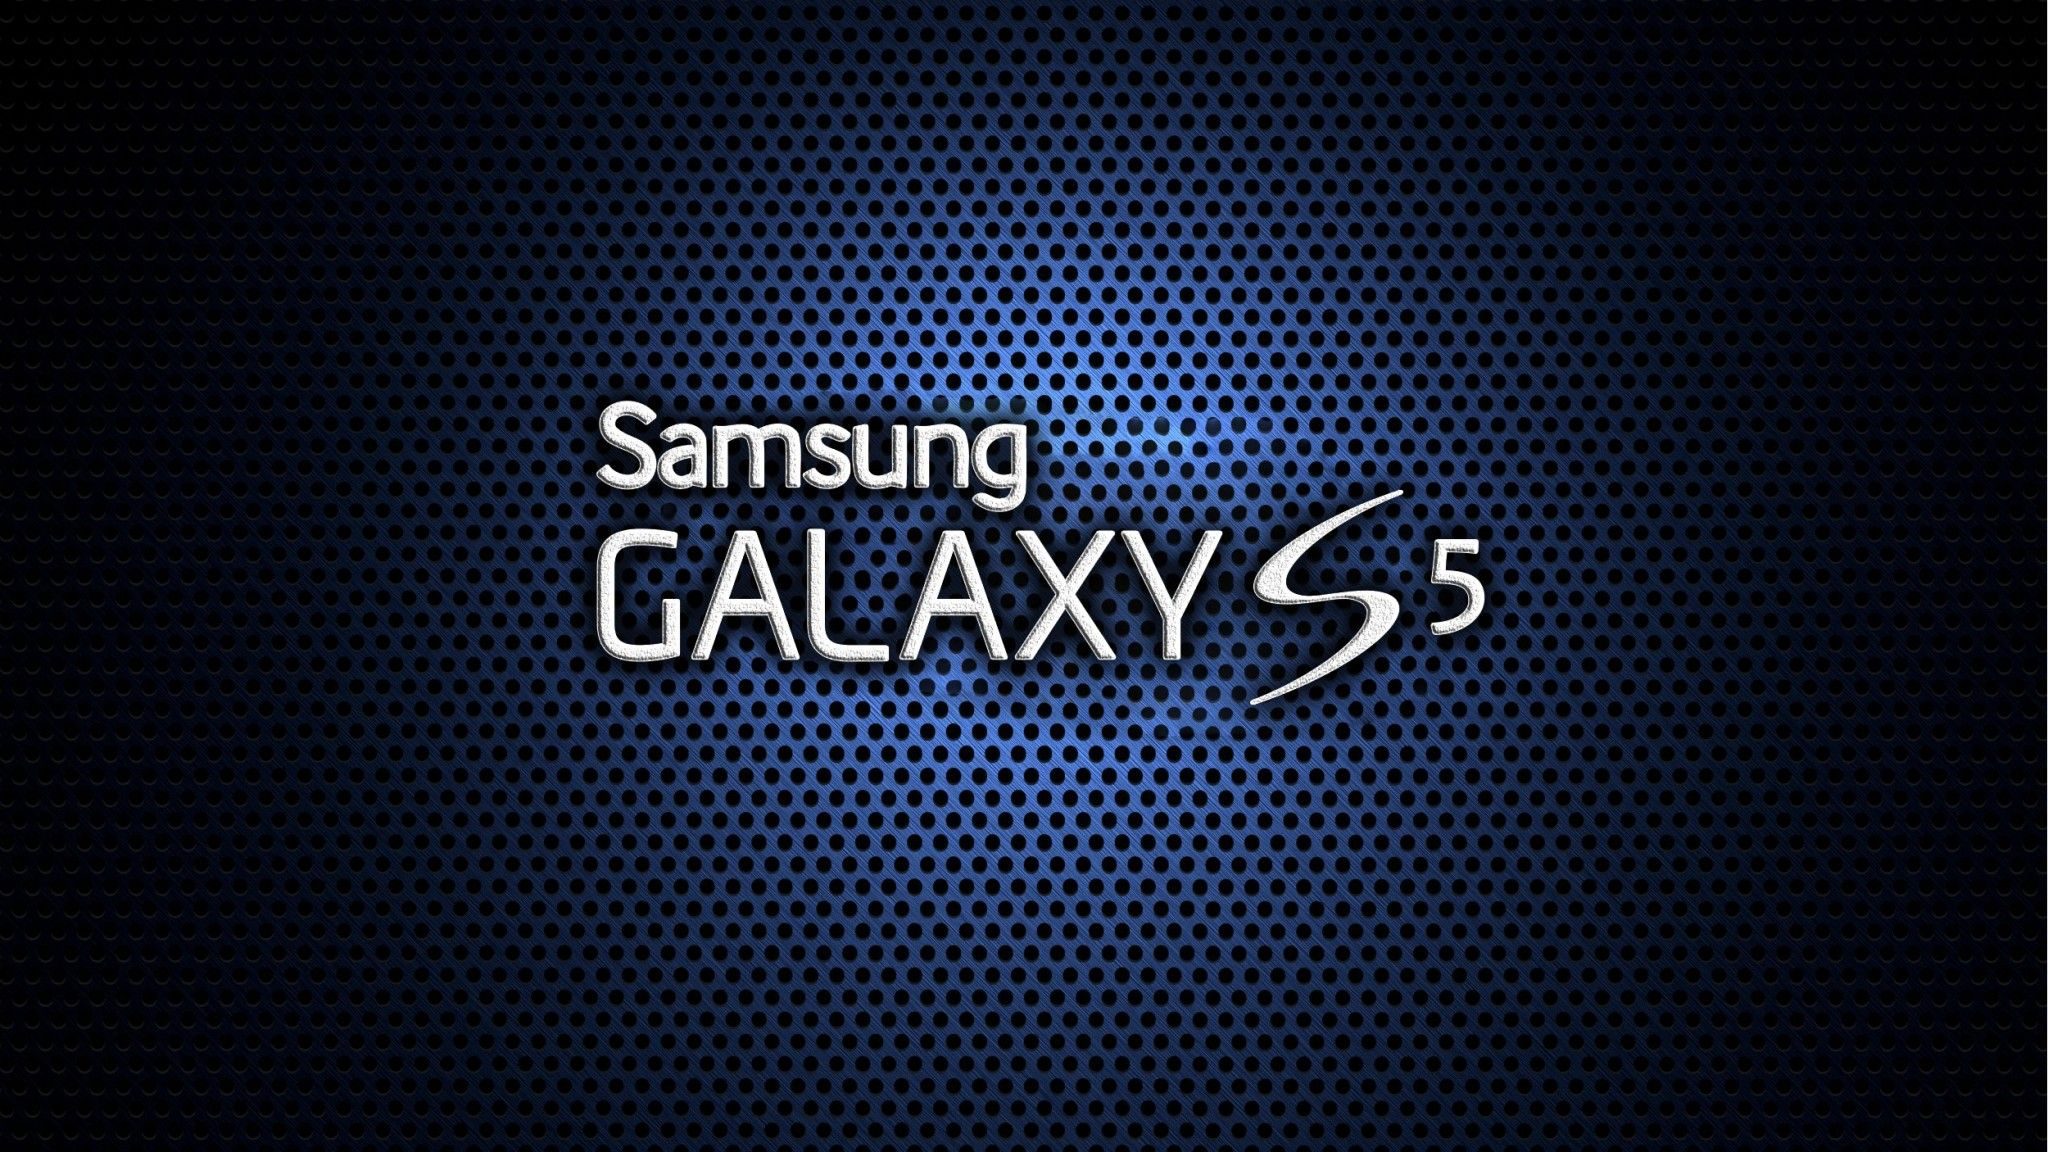 Samsung Logo Wallpapers Top Free Samsung Logo Backgrounds